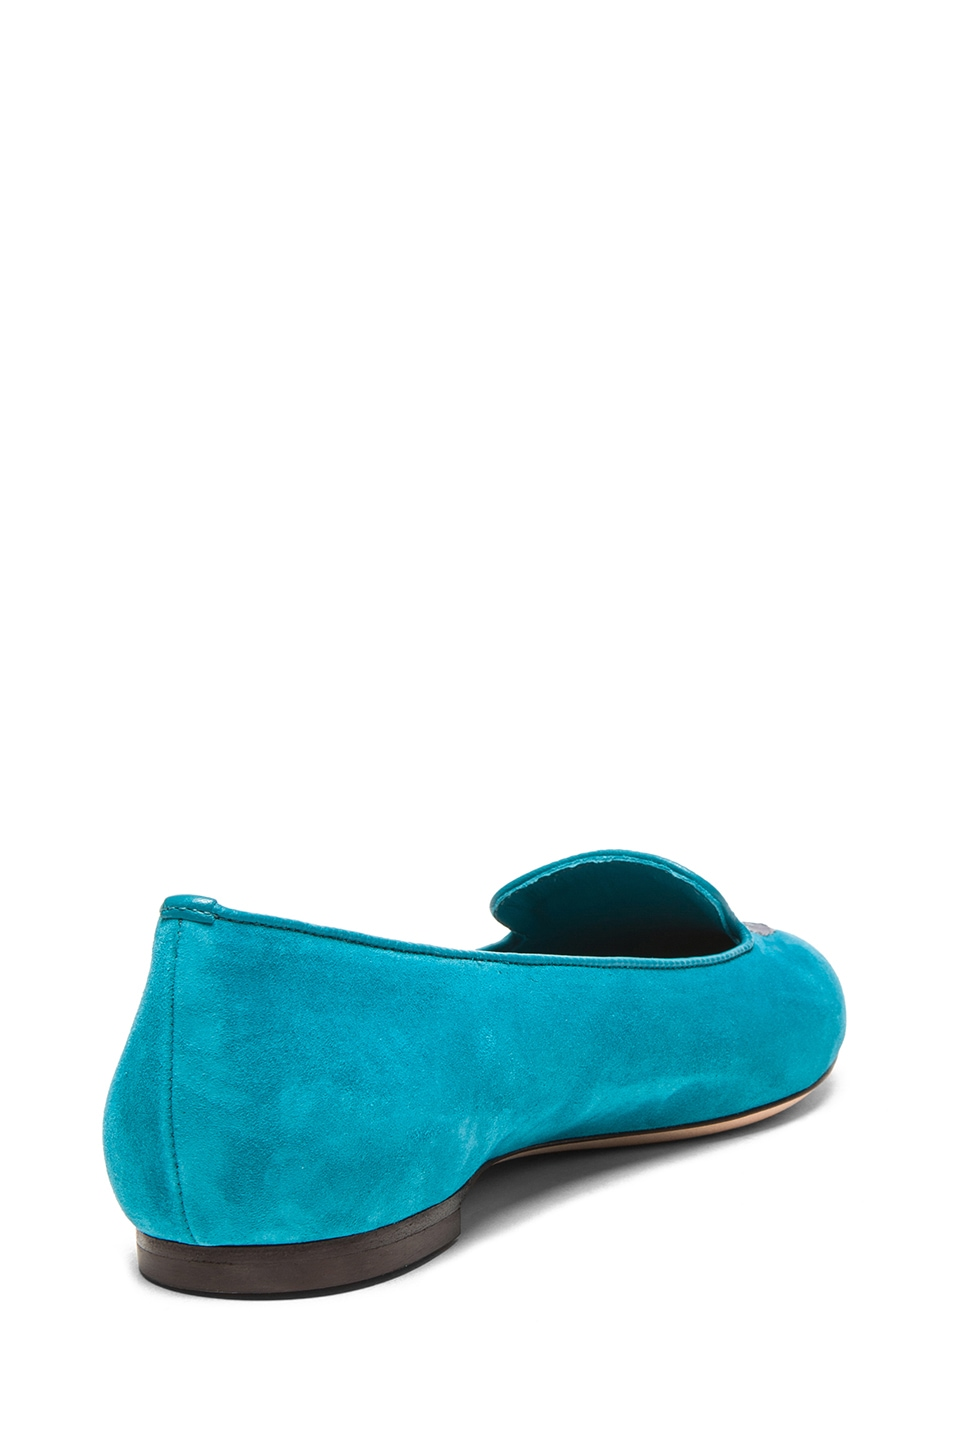 Image 3 of Alexander McQueen Skull Suede Slippers in Light Petrol